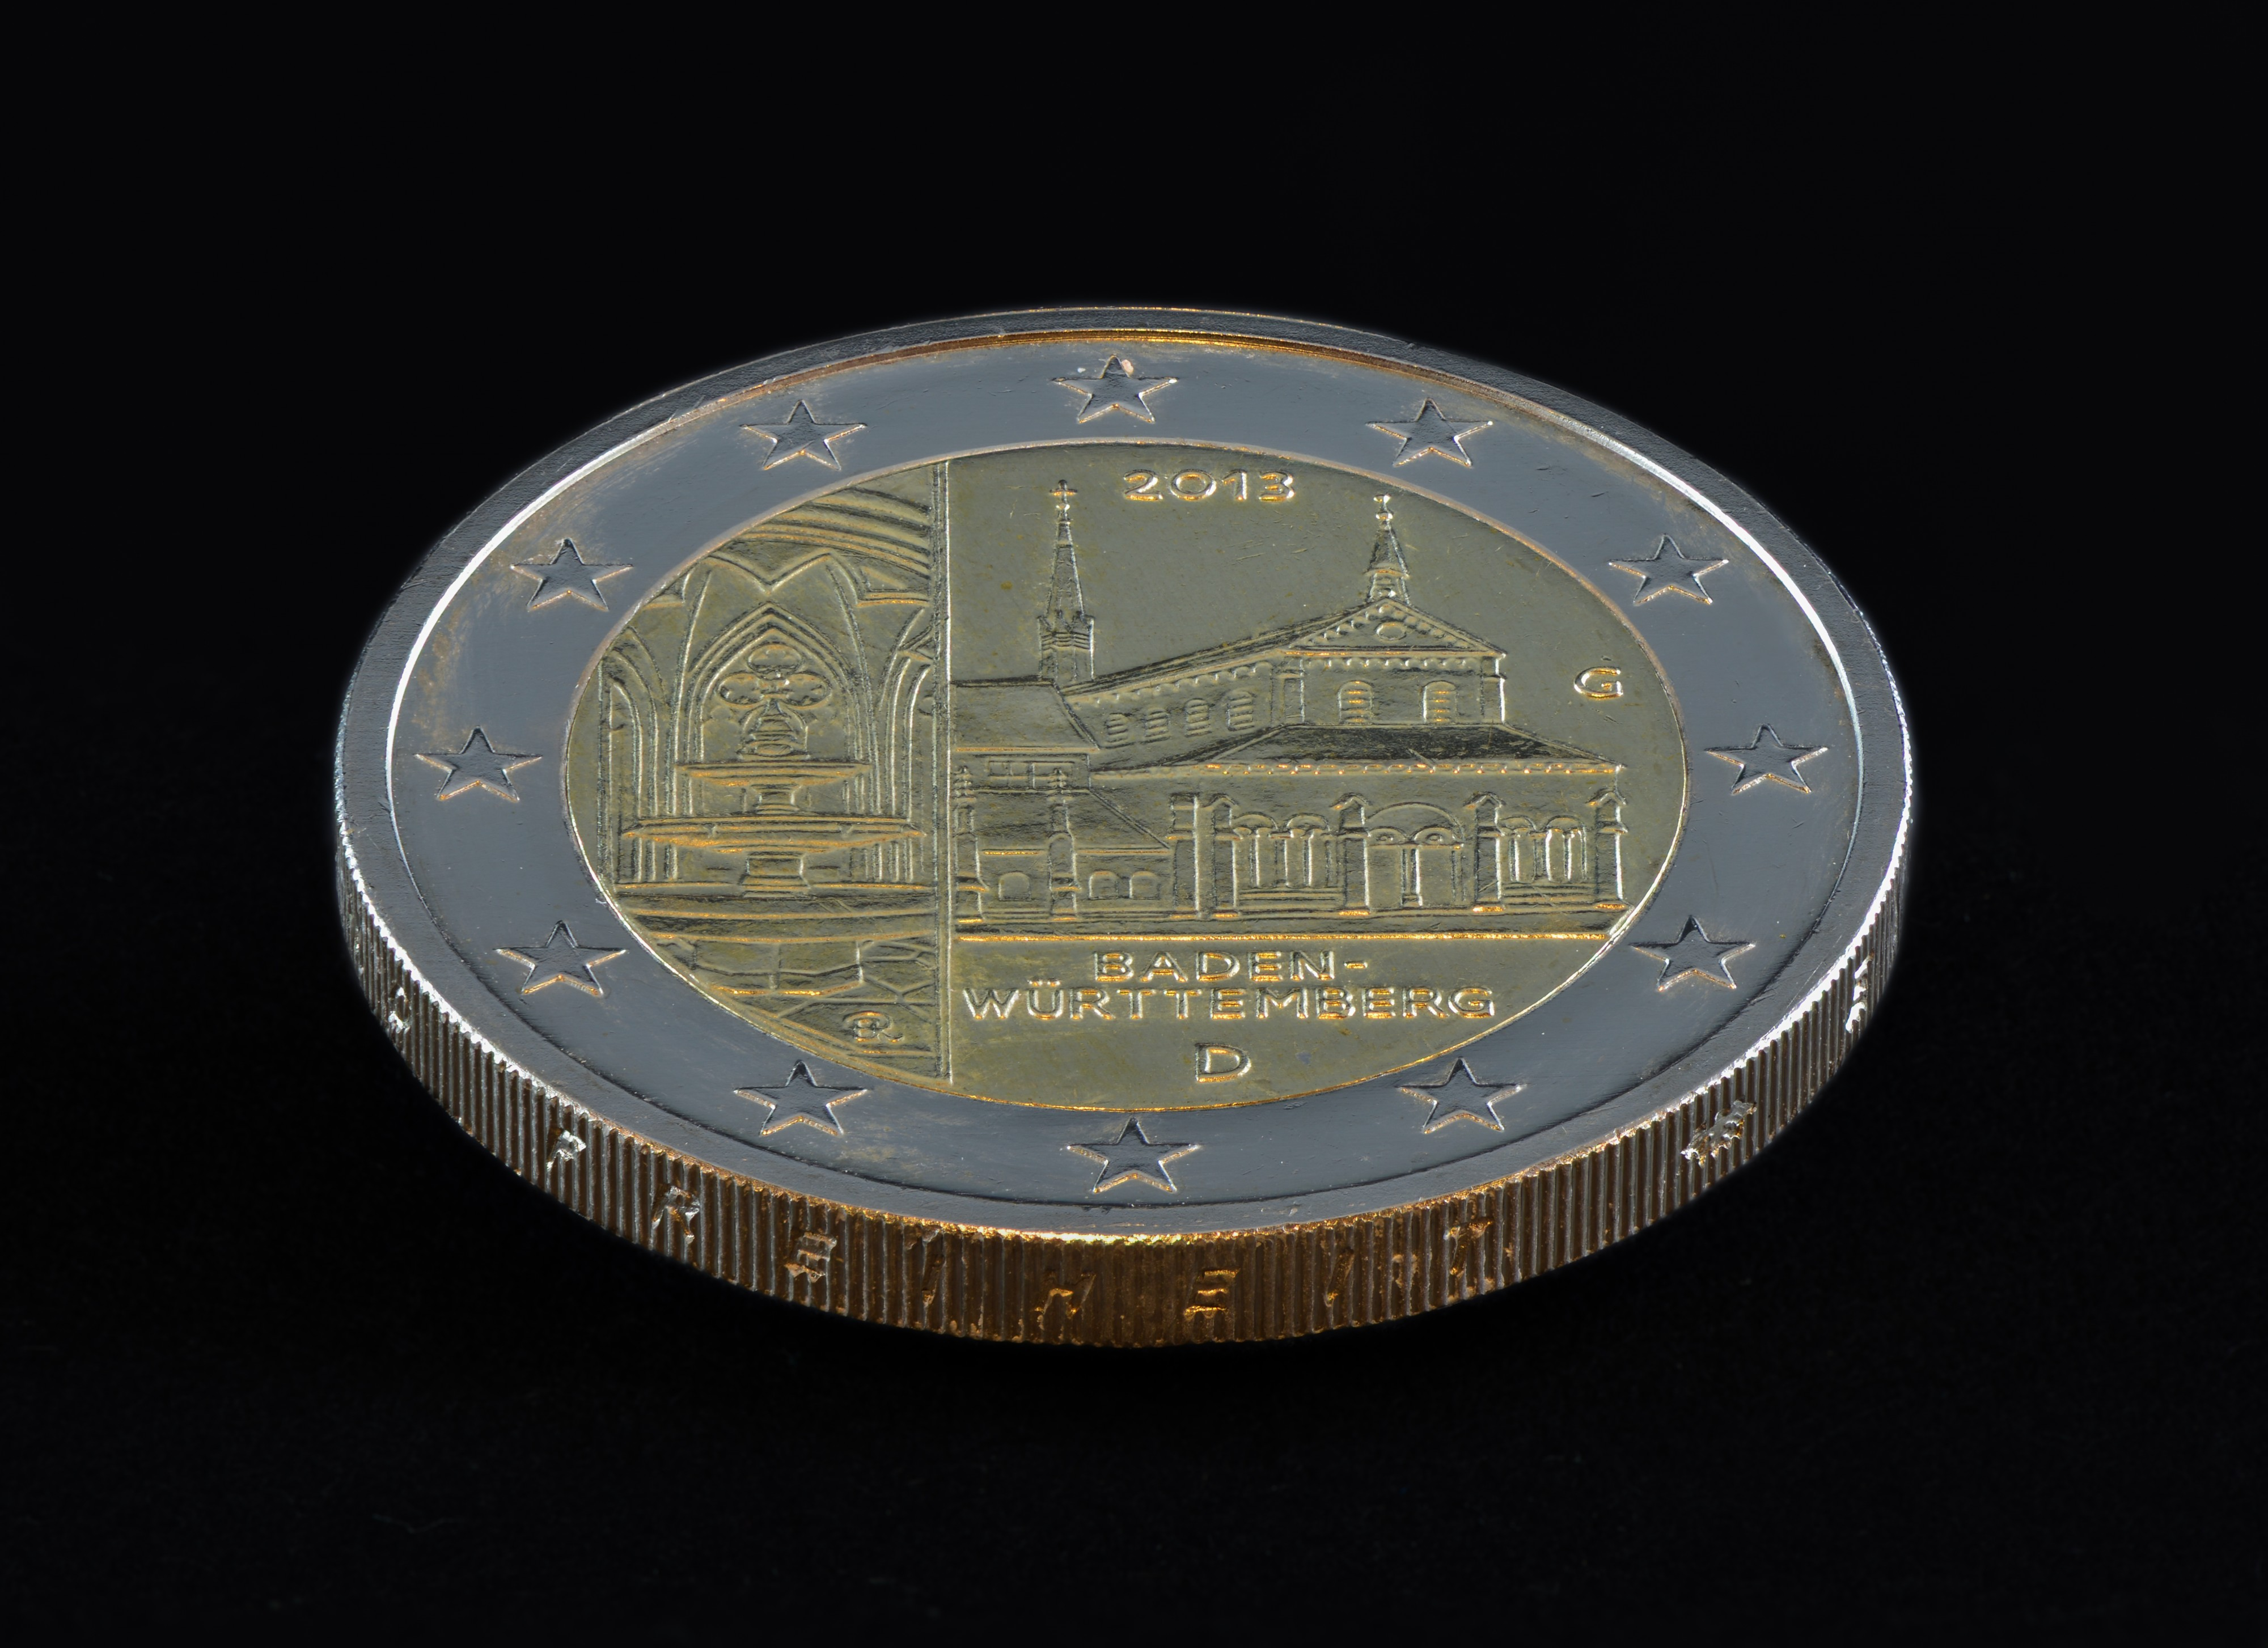 2 Euro commemorative coin - Baden-Würtemberg - 2013 - Germany - 01